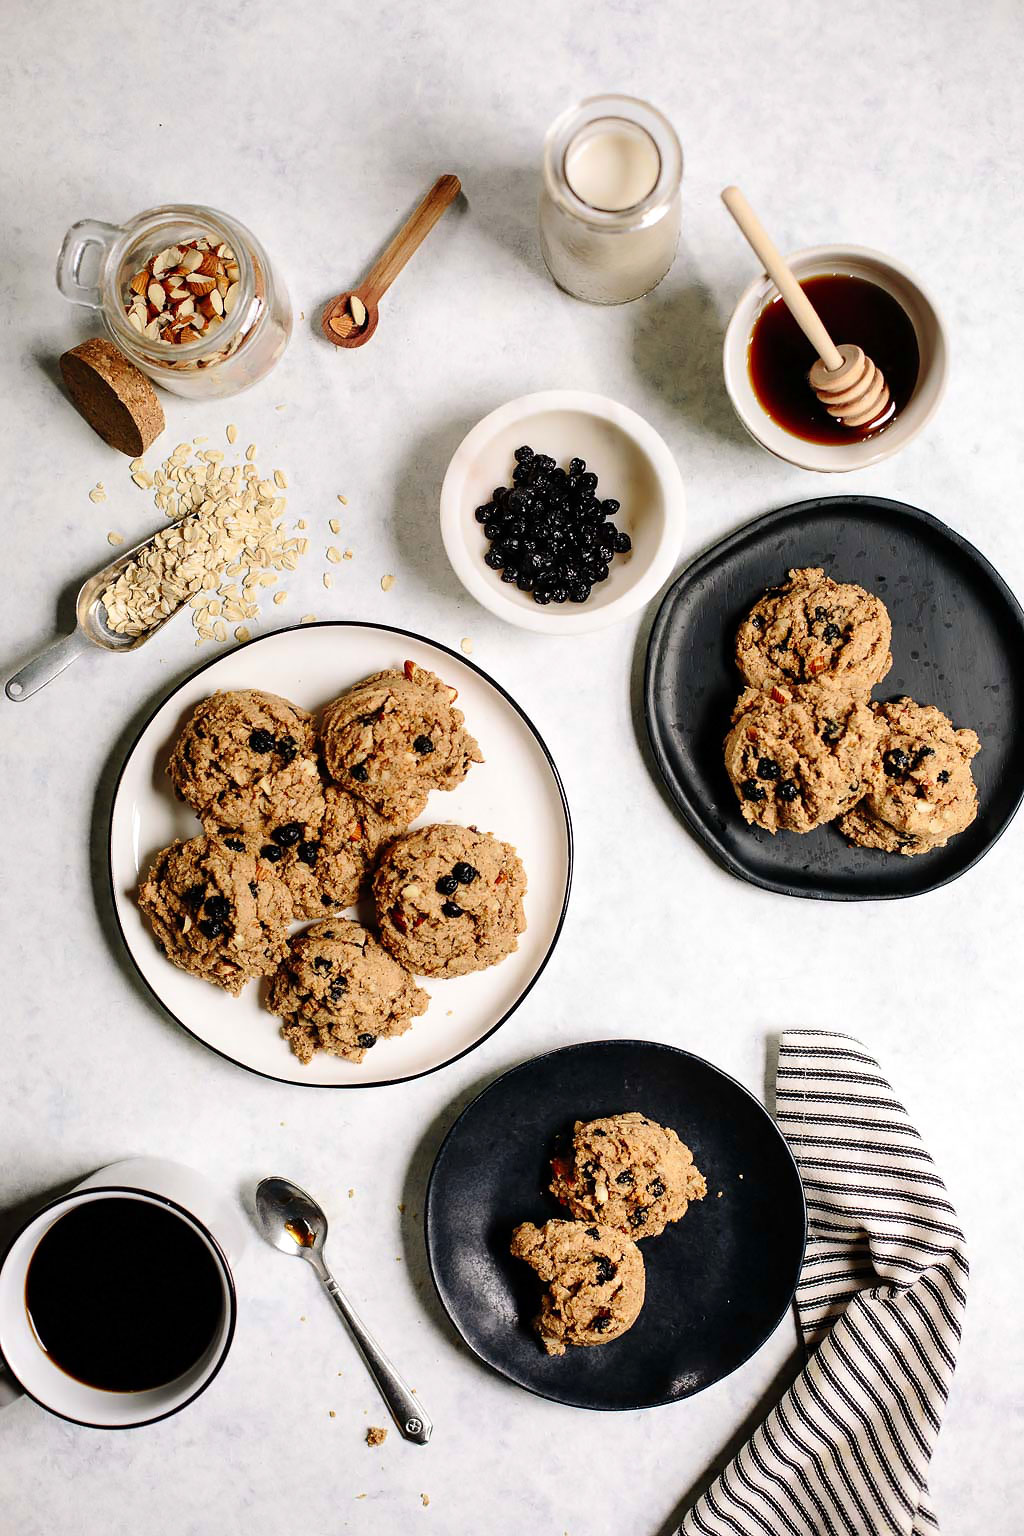 Vegan Blueberry Almond Oat Breakfast Cookies